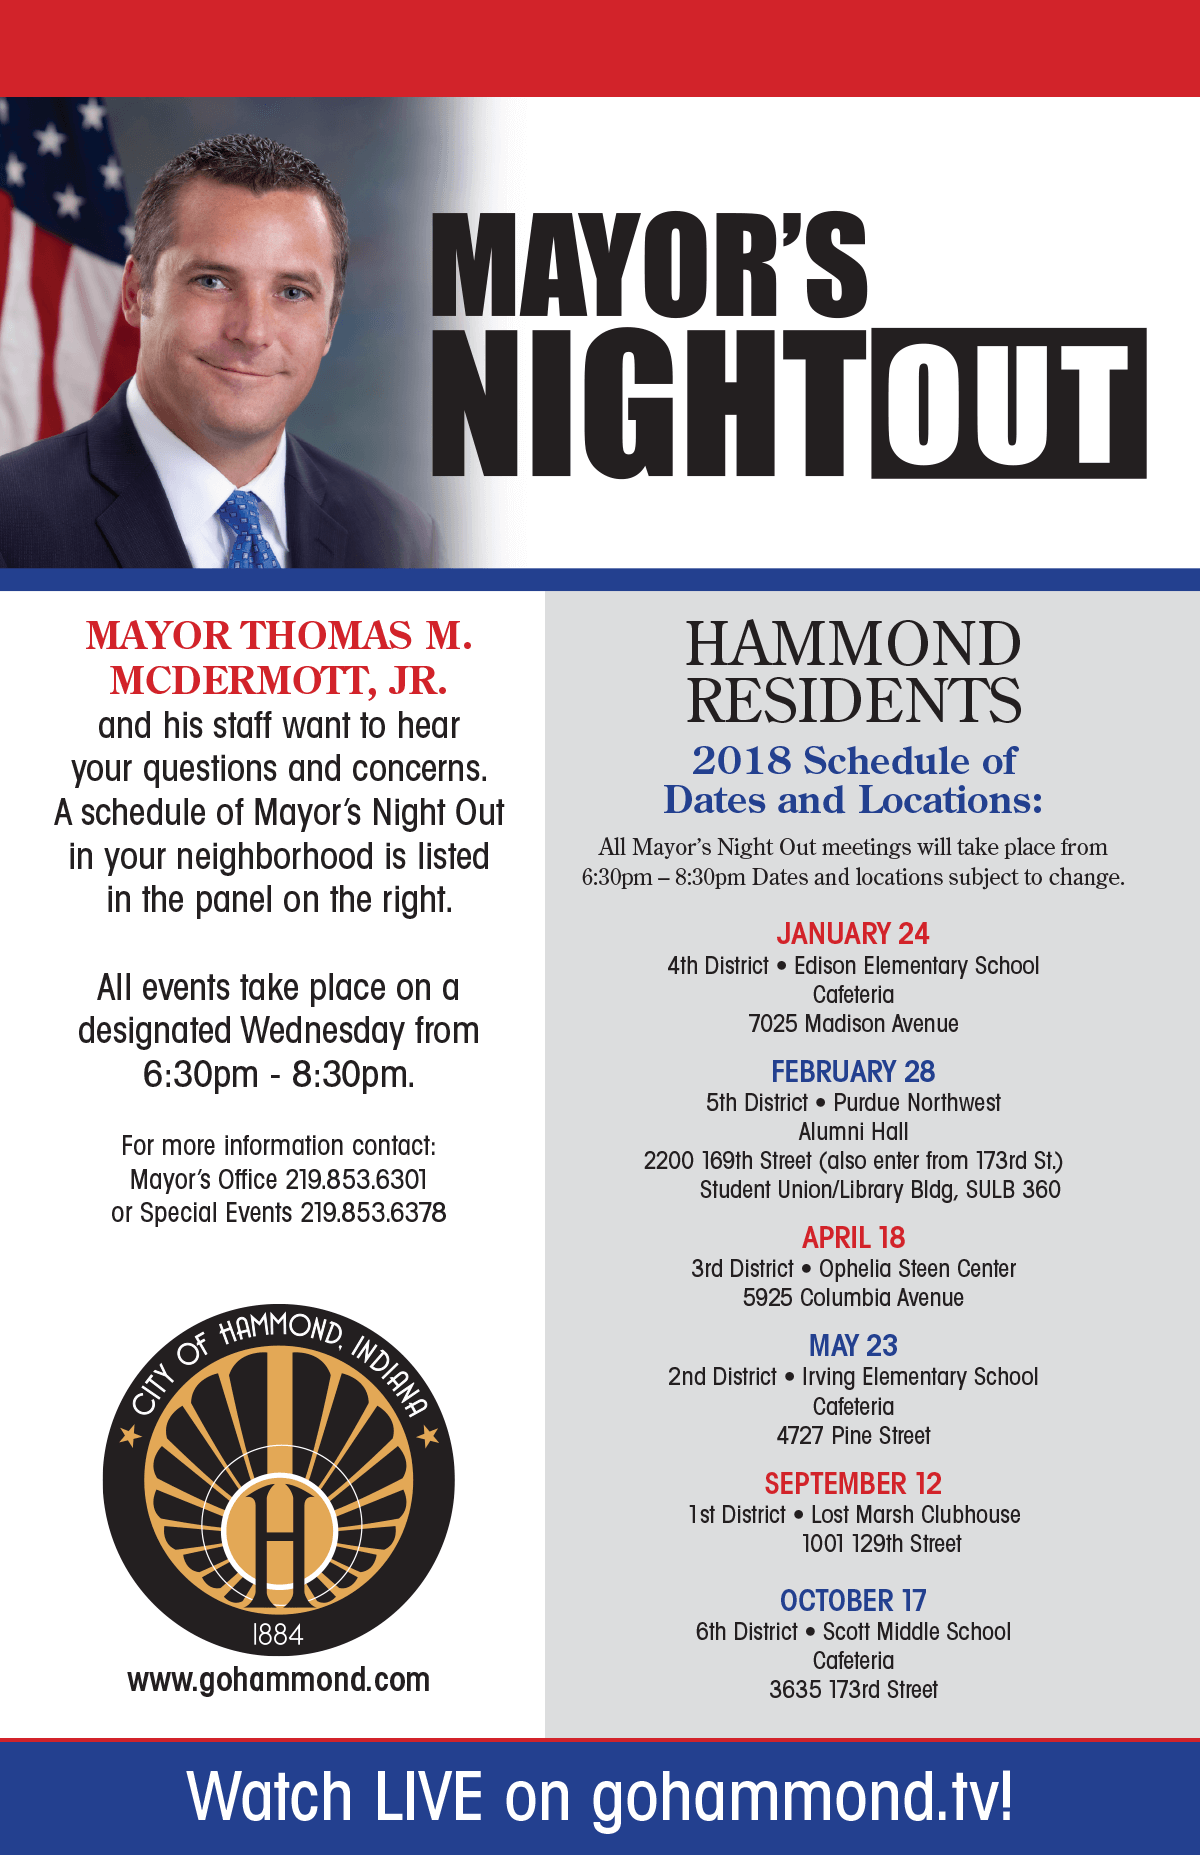 Mayor's Night Out Schedule